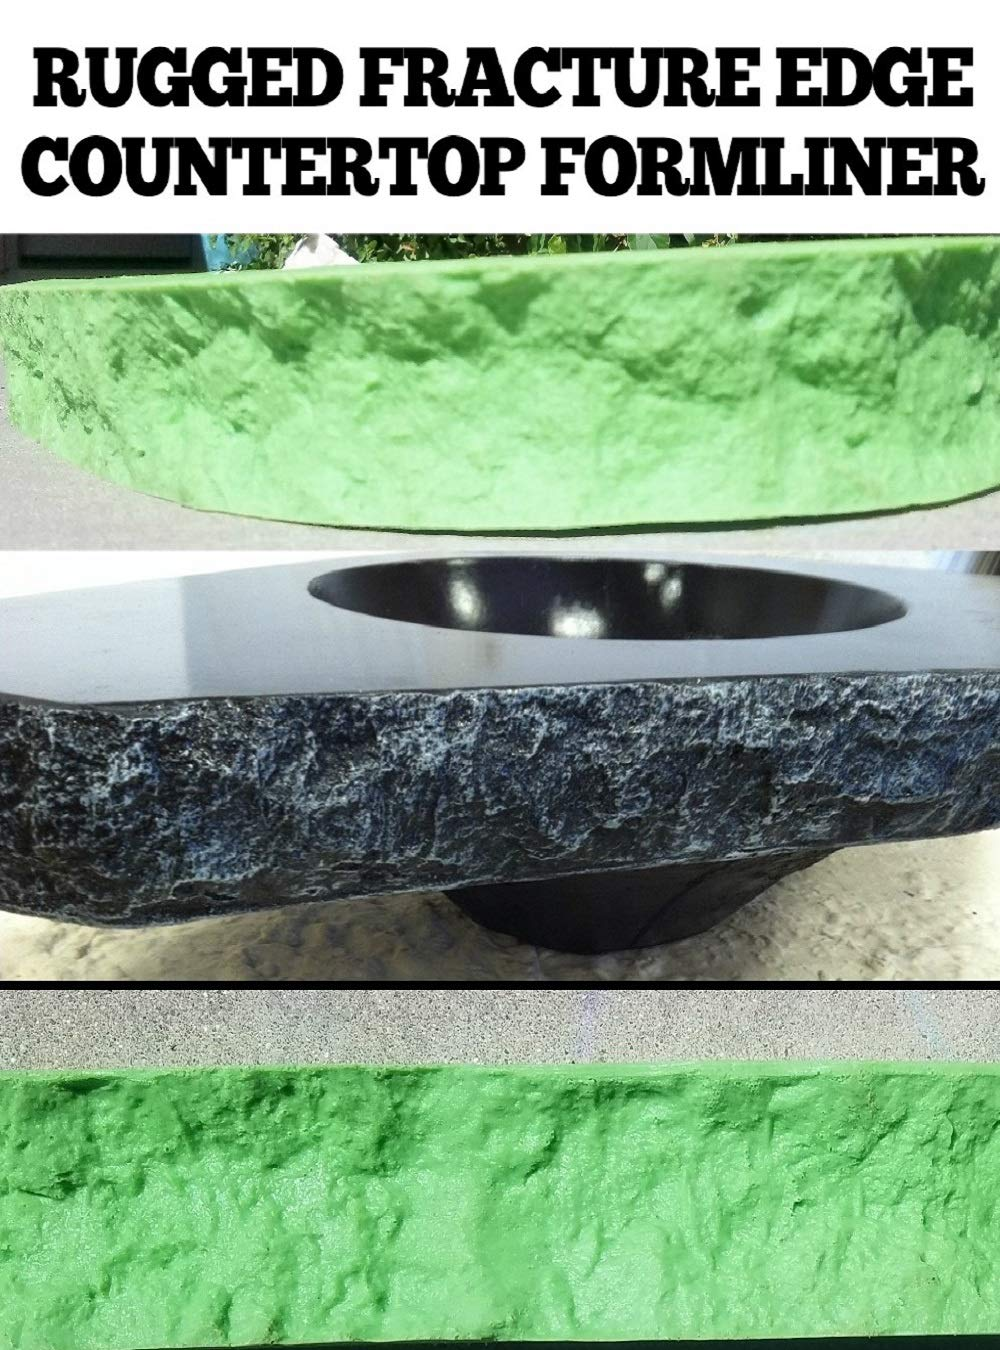 CONCRETE COUNTERTOP EDGE FORM LINERS - Rugged Fracture Edge, 2, 1/4'''' wide x 6' long